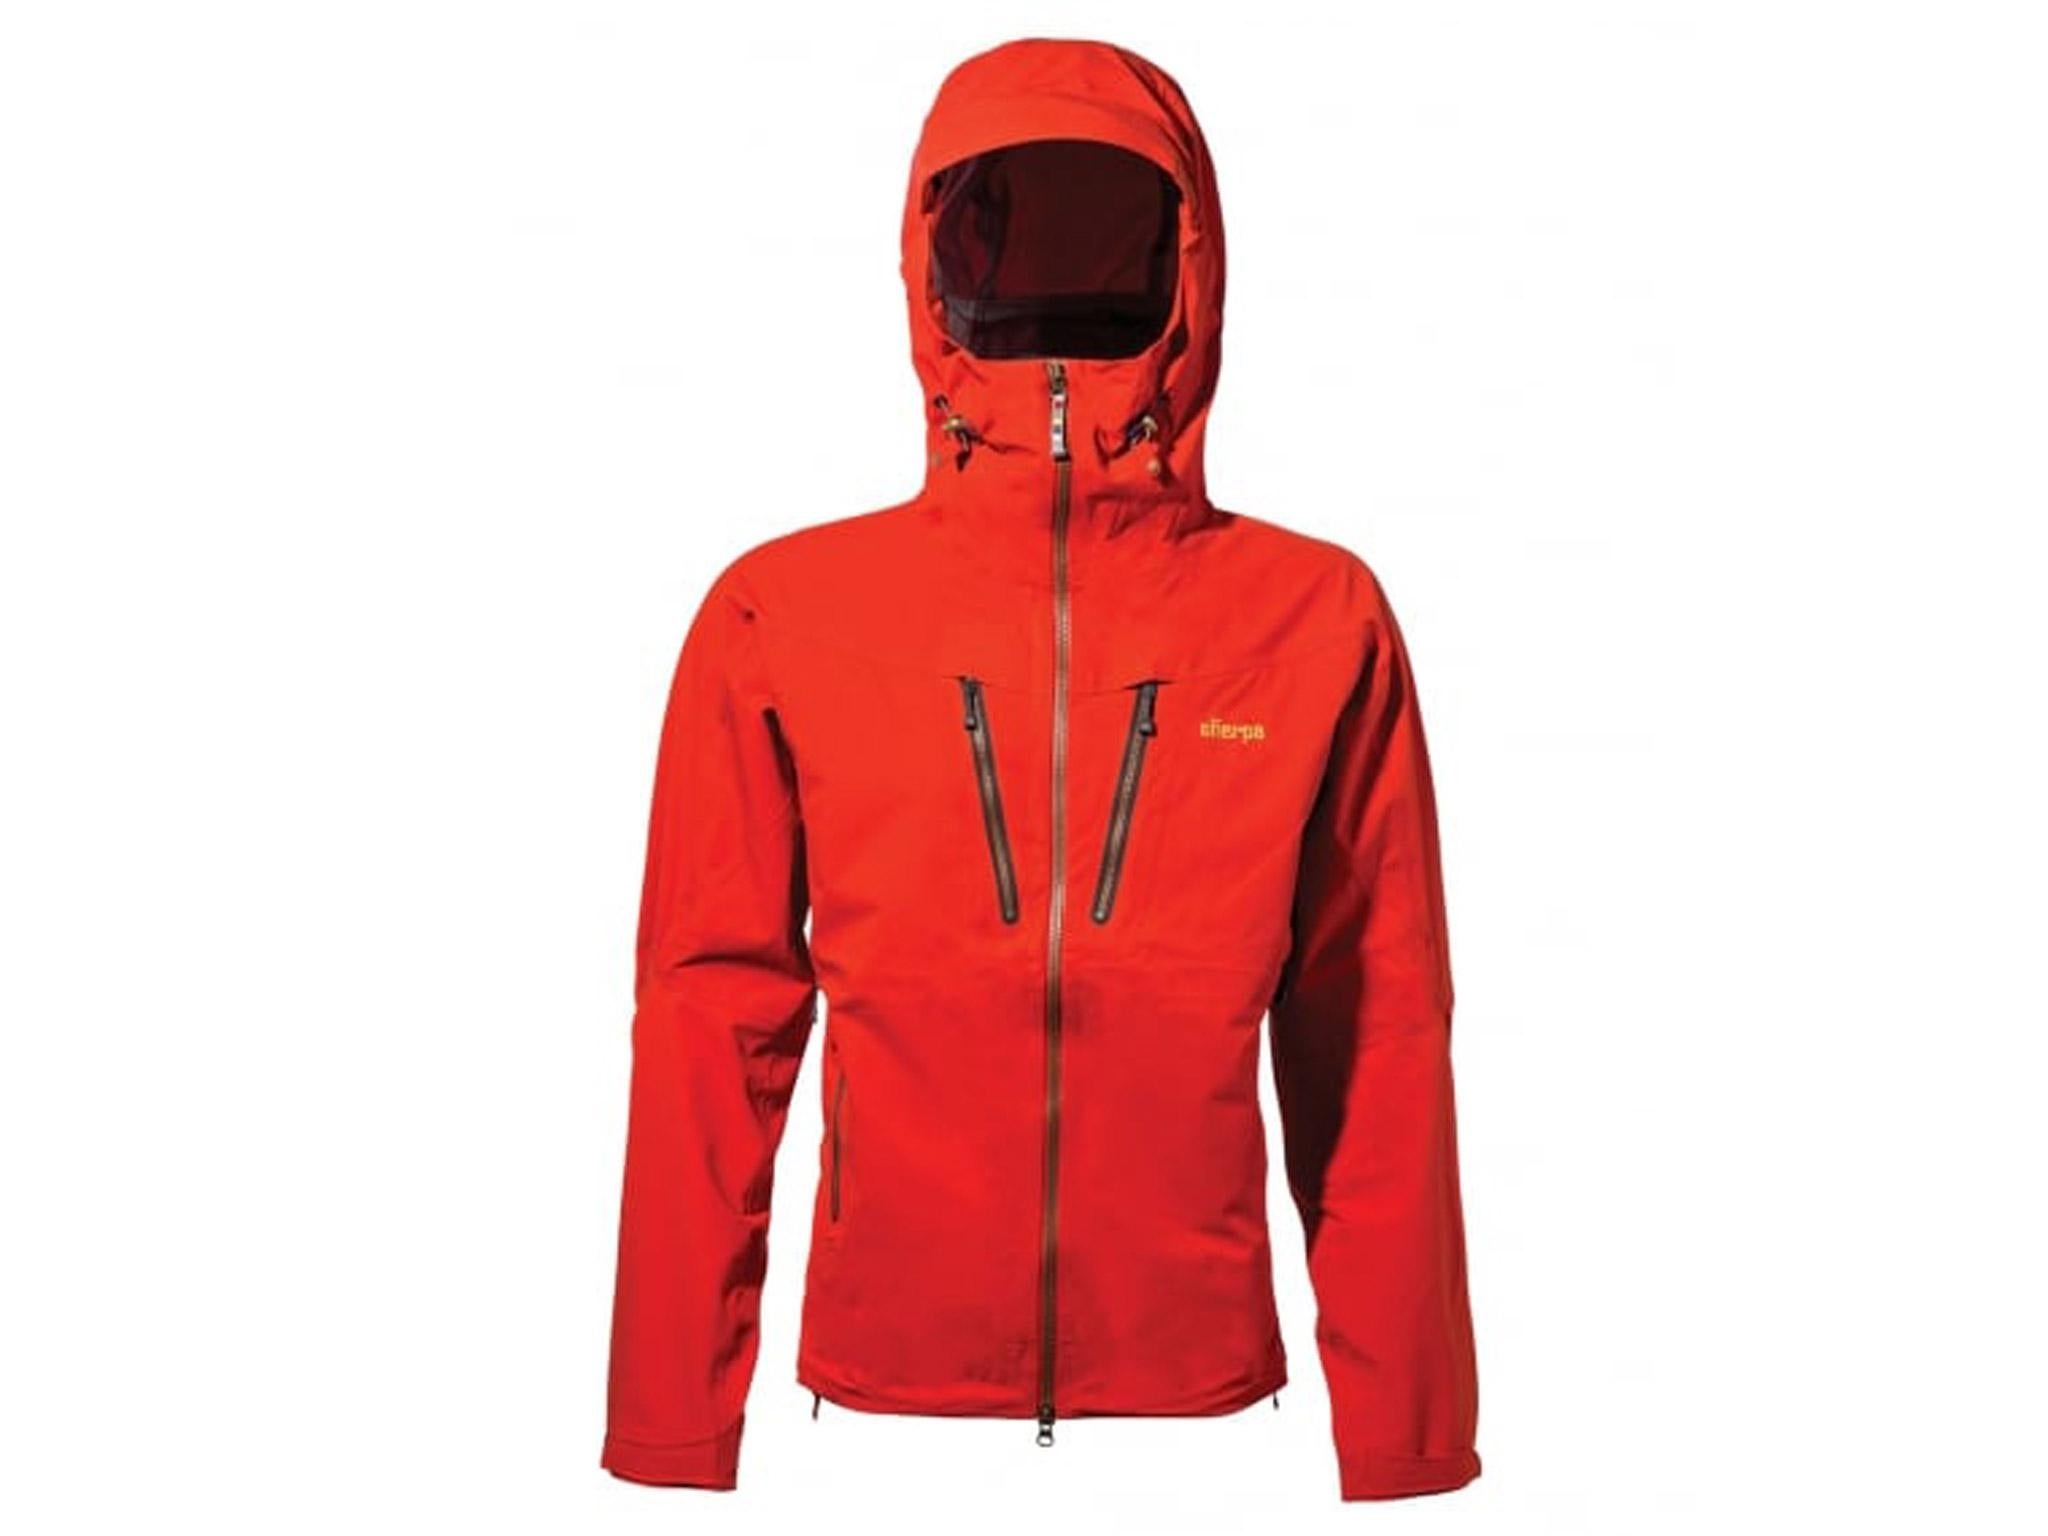 10 Best Mens Waterproof Festival Jackets The Independent Jaket Bomber If You Appreciate A Well Pocketed Jacket We Know Do Then Youll Love This From Sherpa Adventure Gear Brand Two Breast Pockets Are Large